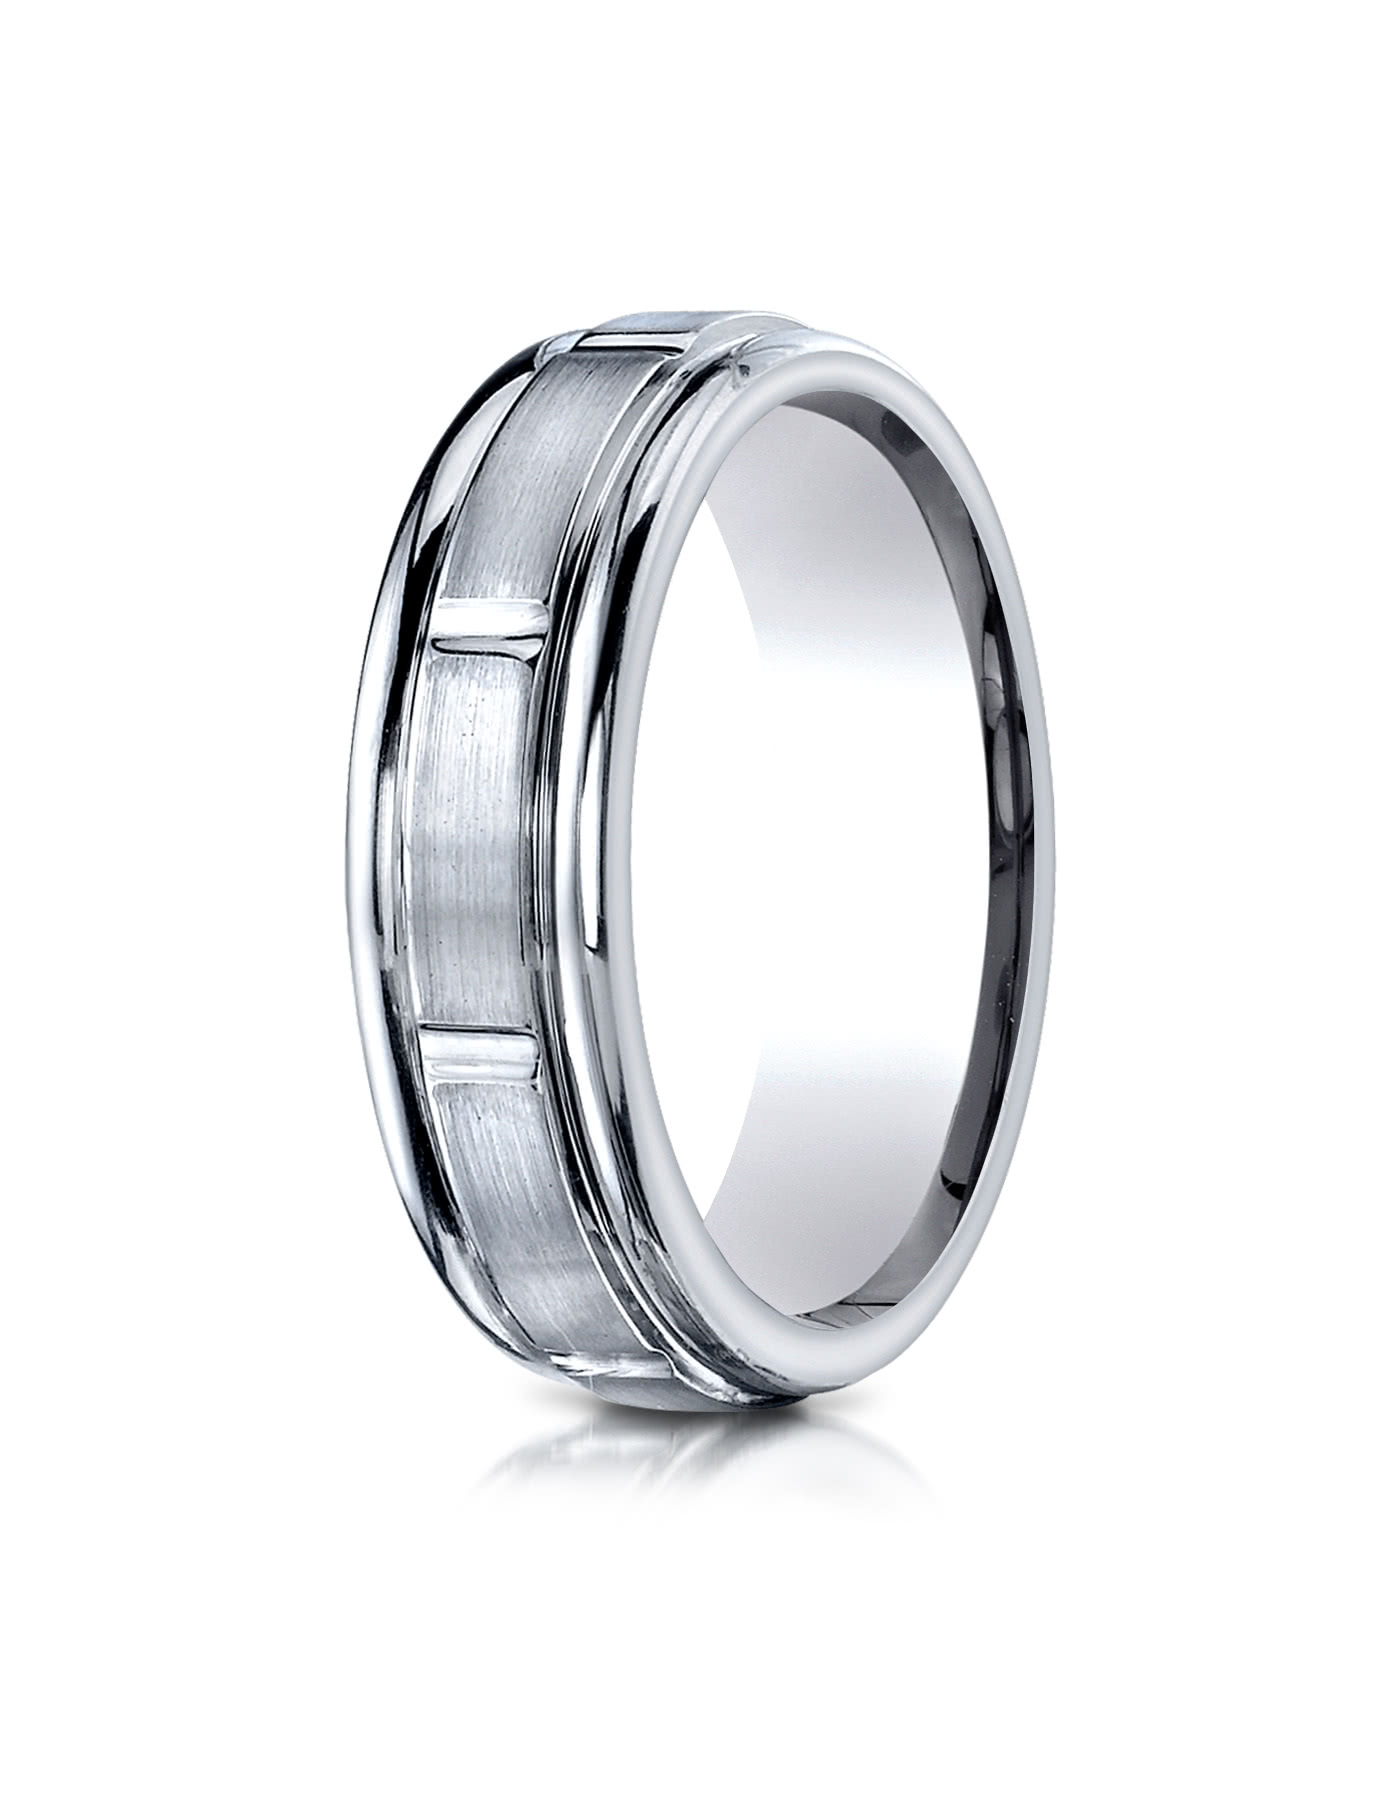 10k White Gold 6mm Comfort Fit Satin Finished 8 High